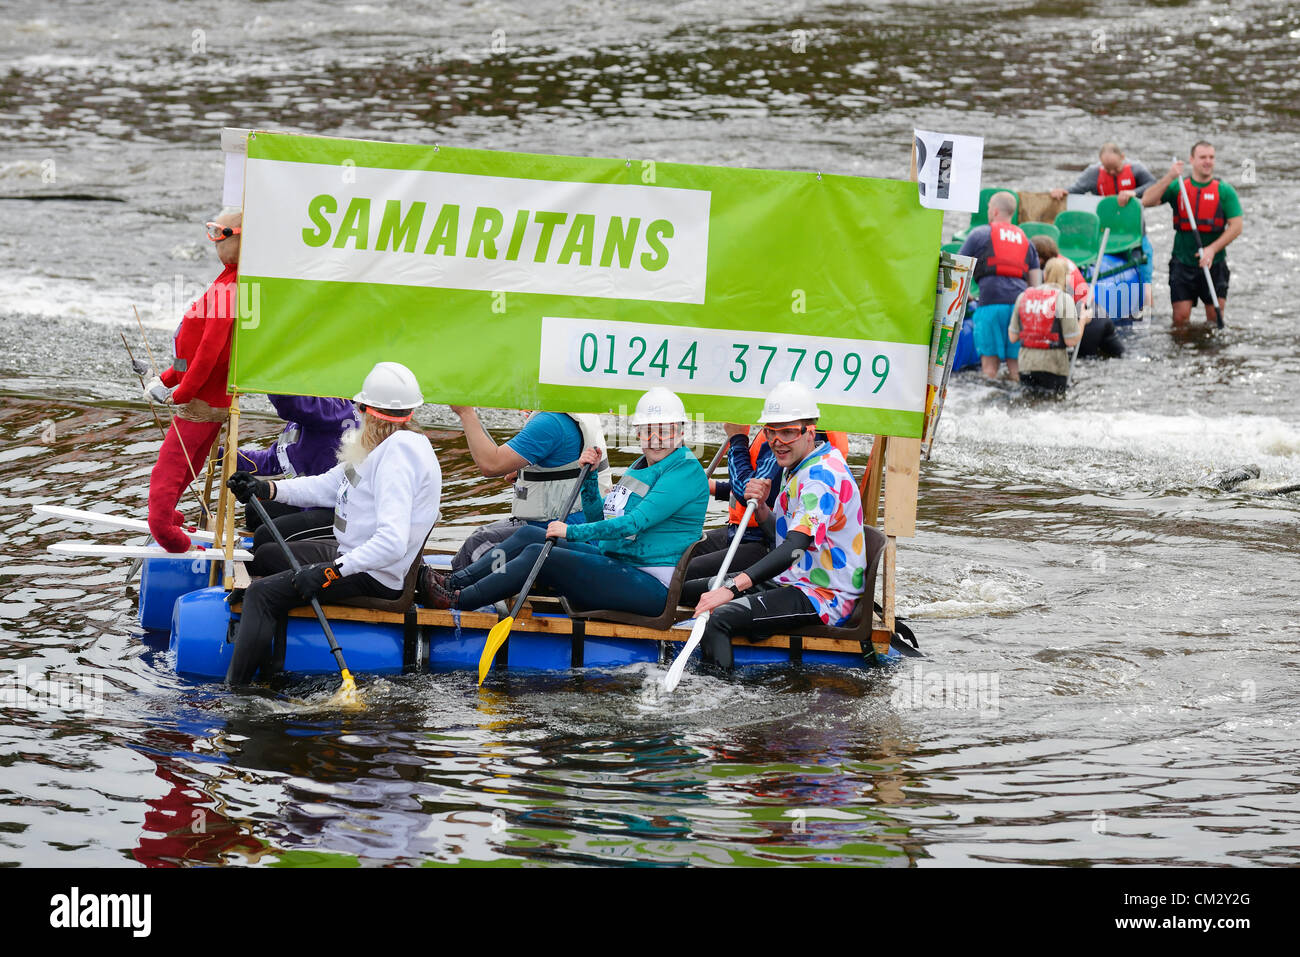 Chester, UK, Sunday 23rd September 2012.  The annual charity raft race on the River Dee organised by The Rotary - Stock Image